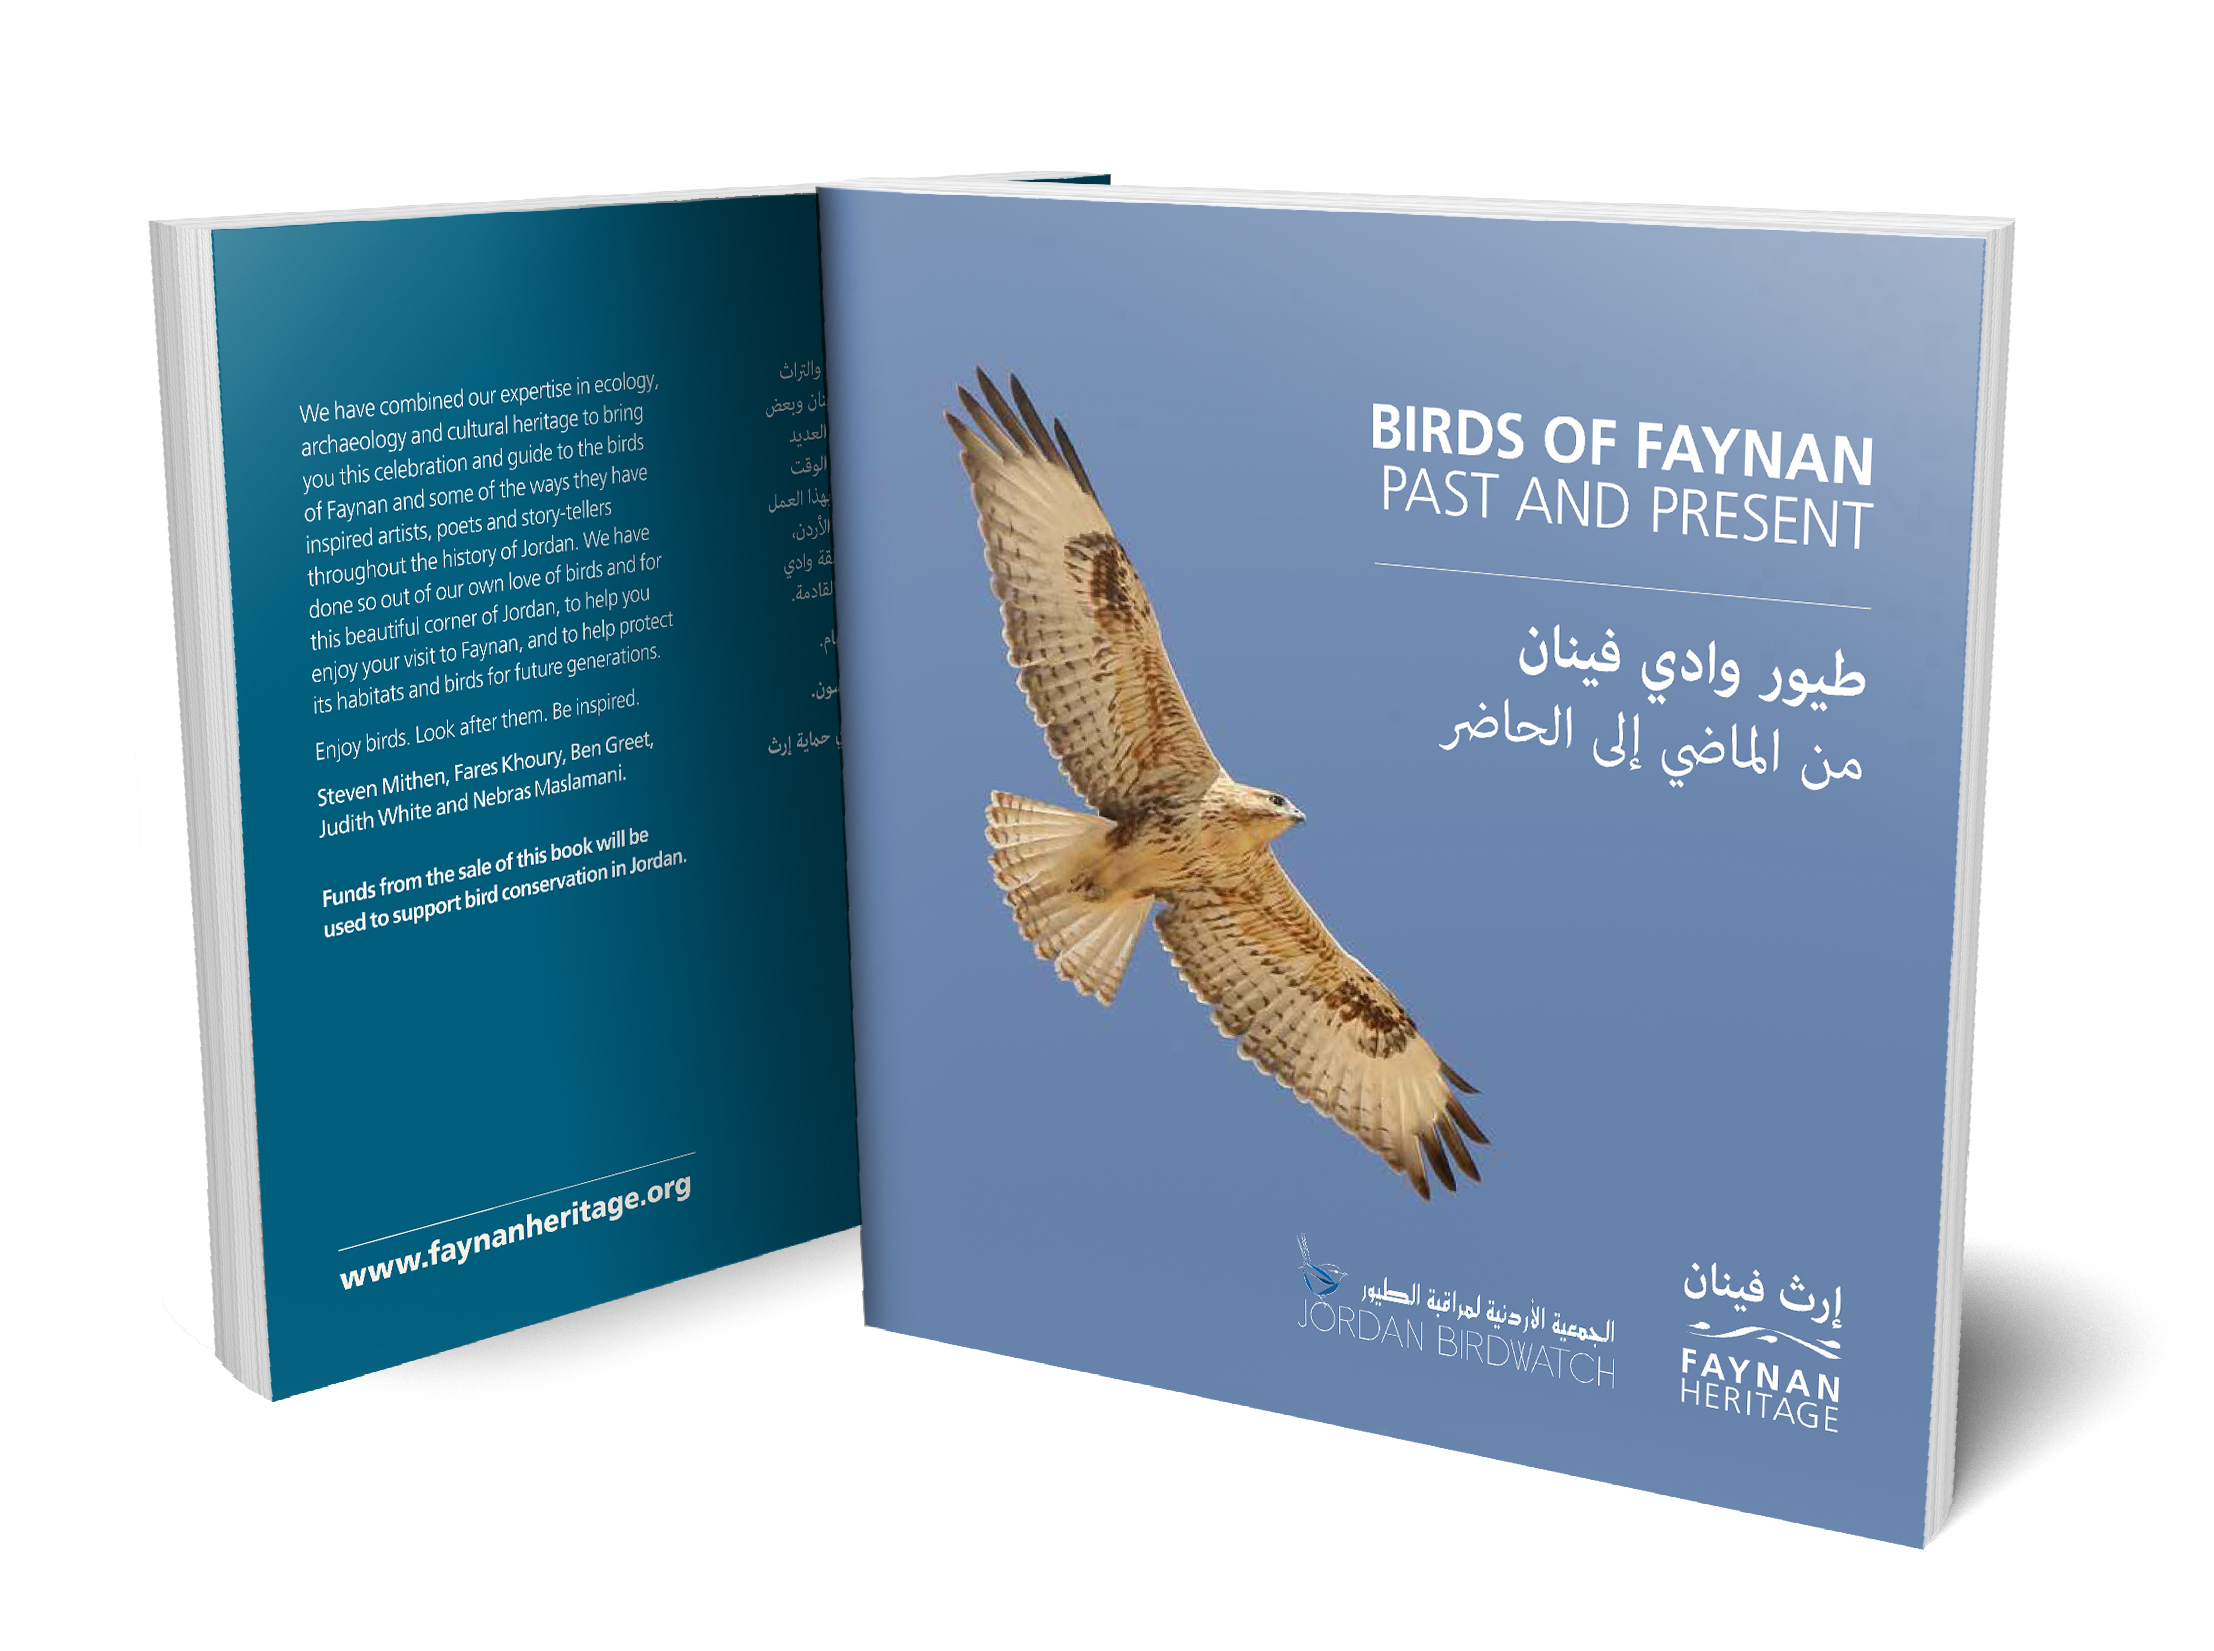 Image of front and back book cover for Birds of Faynan: Past and present